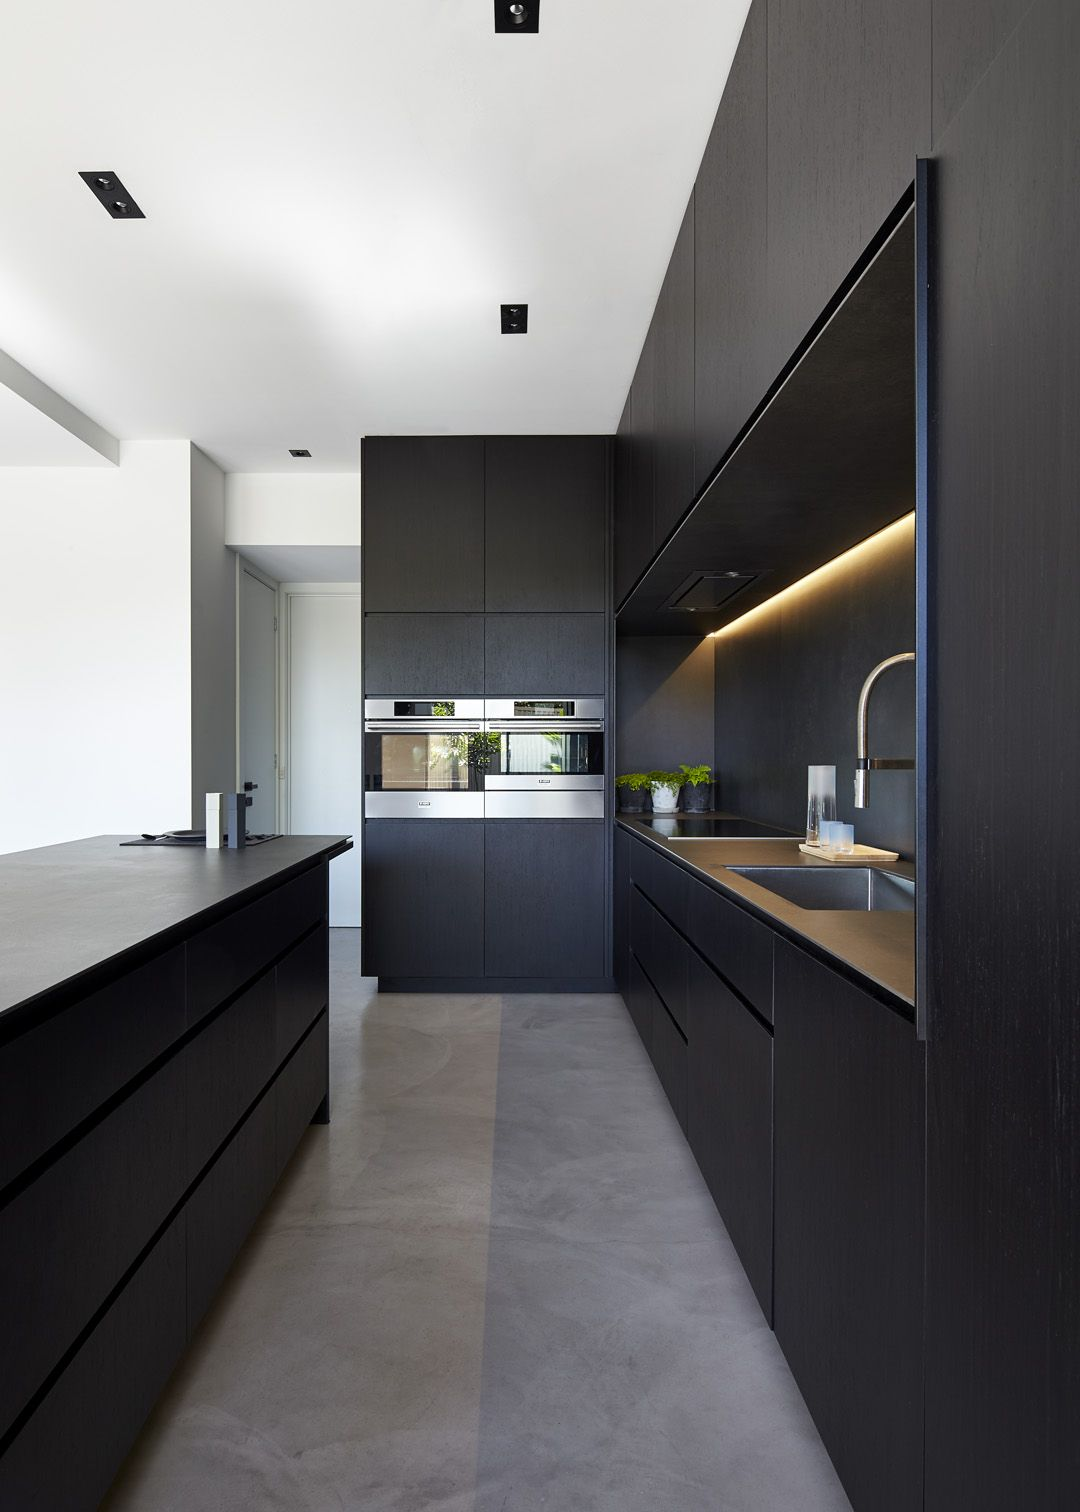 Kitchen Furniture Melbourne Minimal Design Blog House Black Kitchens And Islands